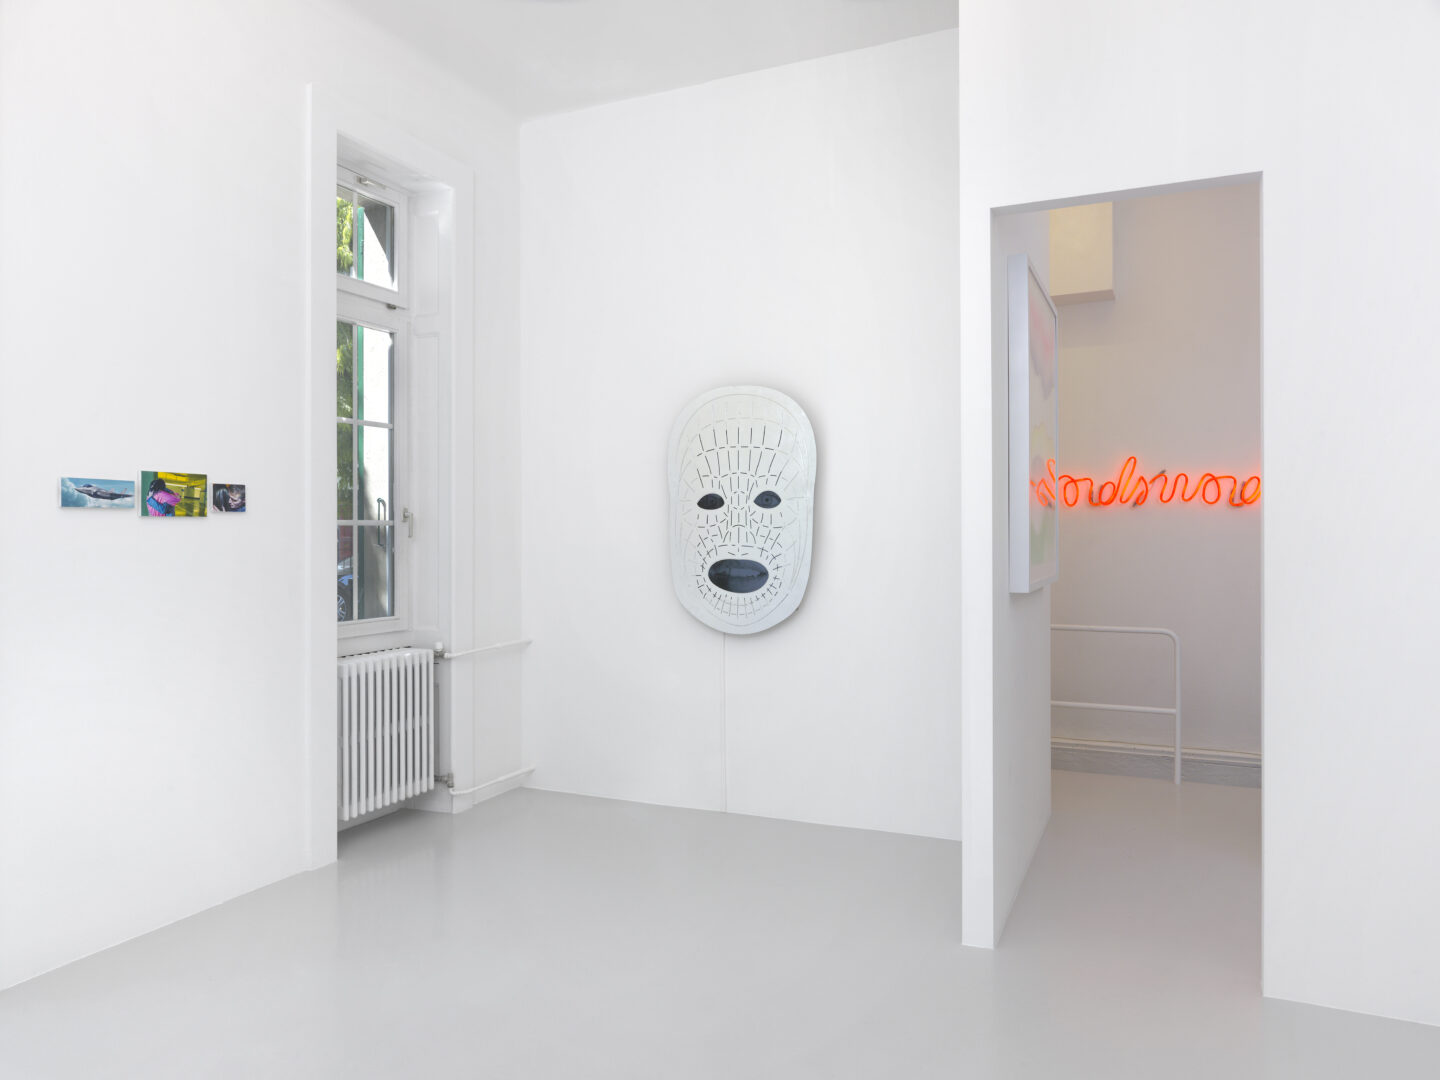 Exhibition View Groupshow by Albert Baronian «Le Choix d'Albert; view on Robert Devriendt, A Tender Performance, 2015, Tony Oursler, A*g, 2016 and Marie José Burki, Wordswordswords, 2014» at Xippas, Geneva / Photo: Annik Wetter